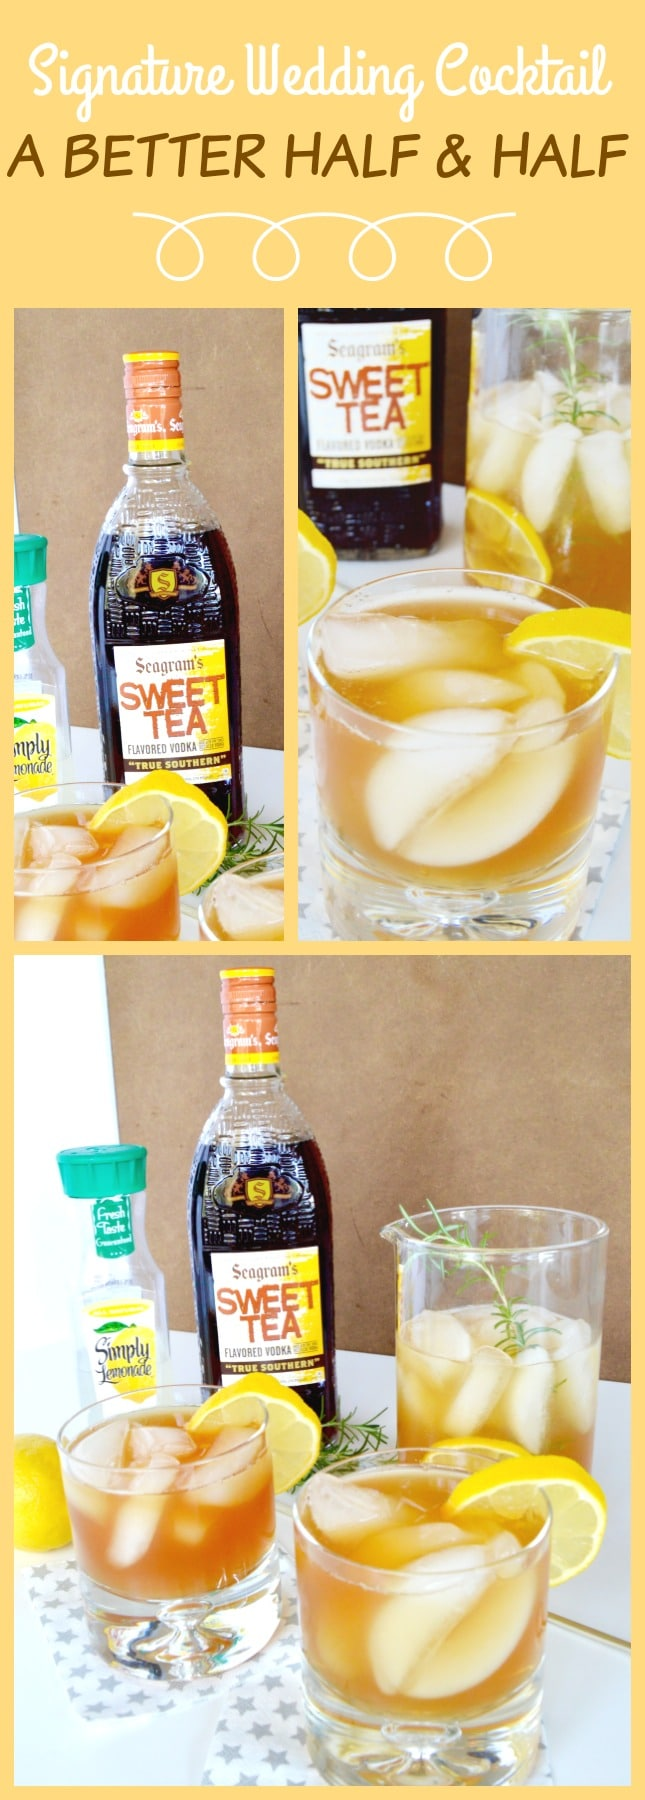 A version of a delicious signature wedding cocktail that will please even the pickiest of drinkers: A better half and half. It's combination of Sweet Tea Vodka and fresh lemonade. It's a nice change of pace, not overly strong, but very satisfying.